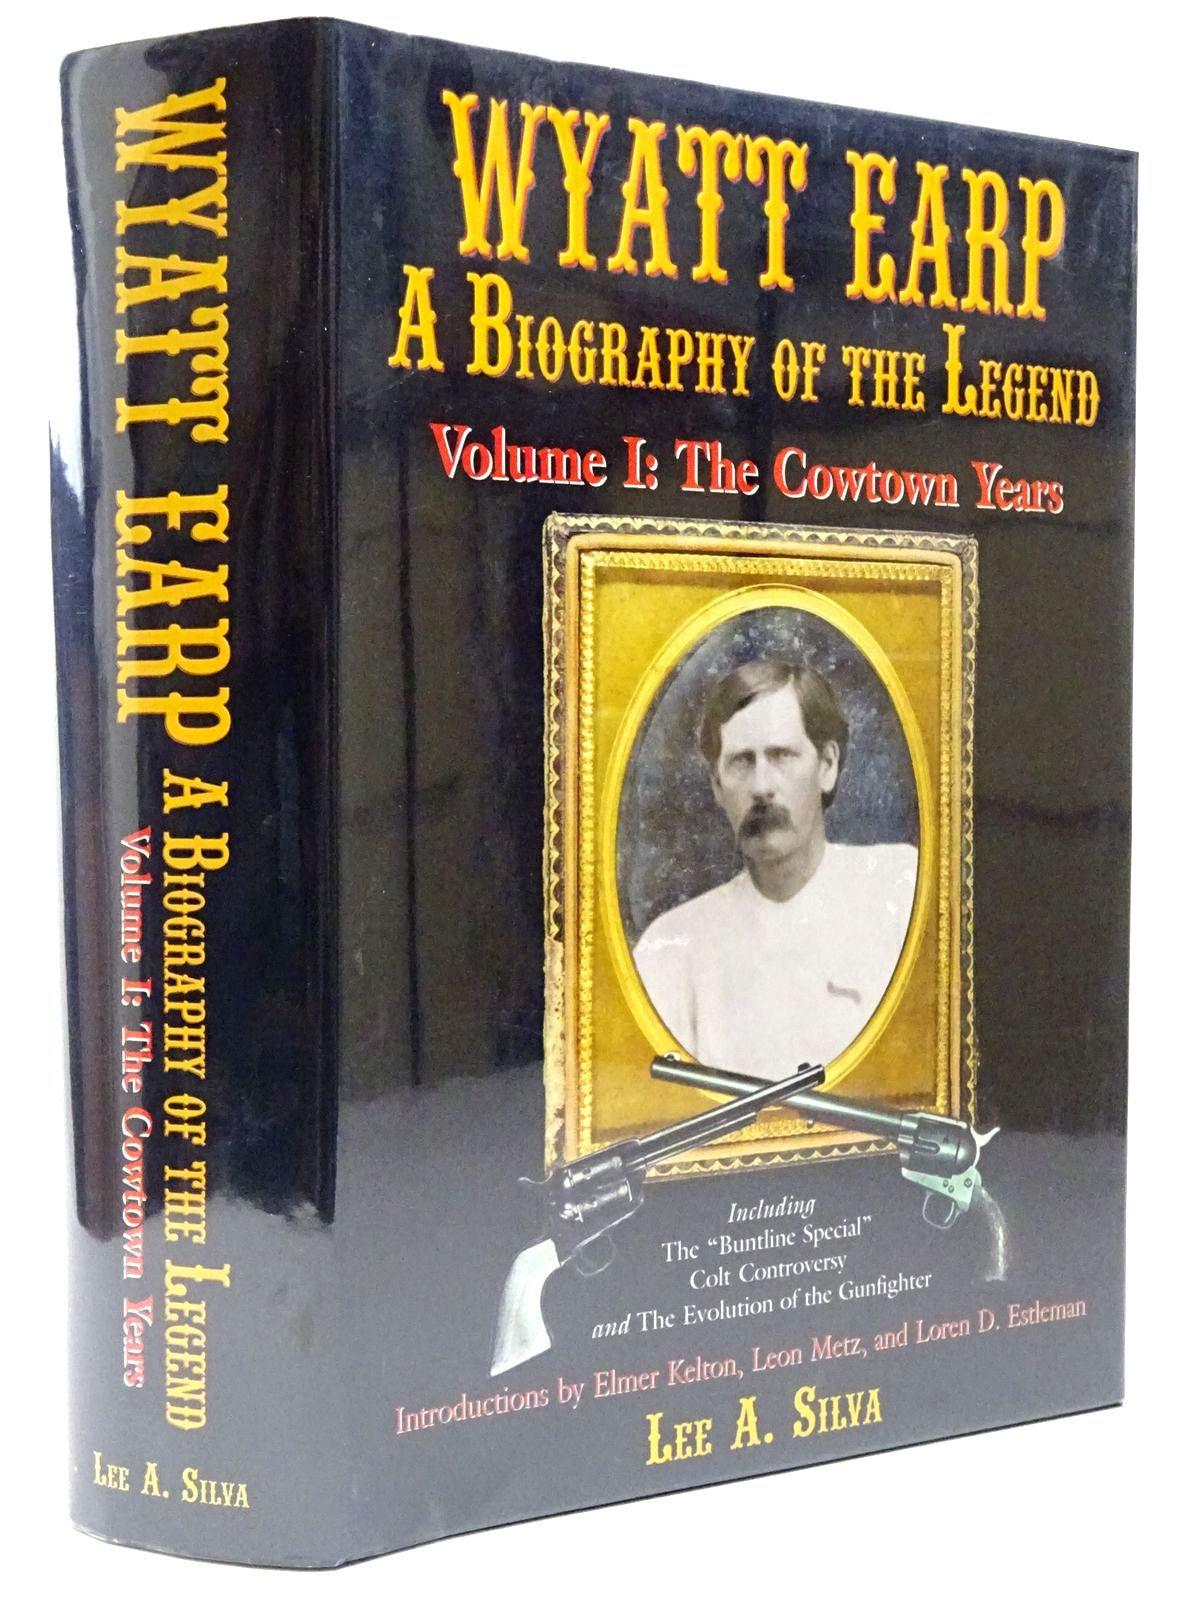 Photo of WYATT EARP A BIOGRAPHY OF THE LEGEND VOLUME I: THE COWTOWN YEARS